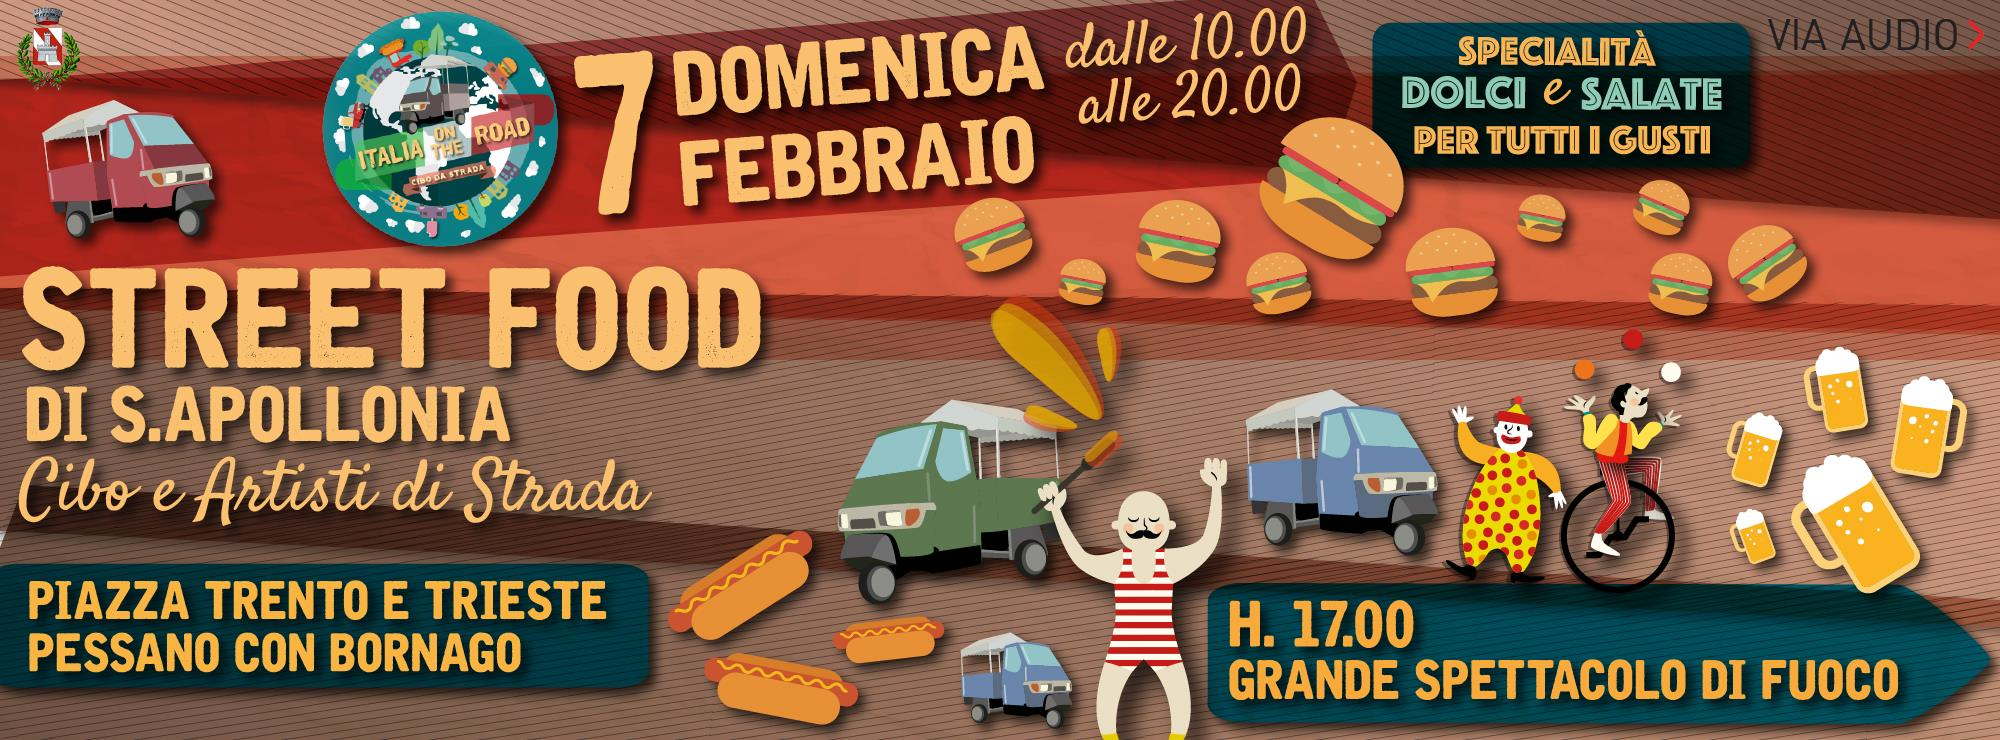 Street Food di Sant'Apollonia